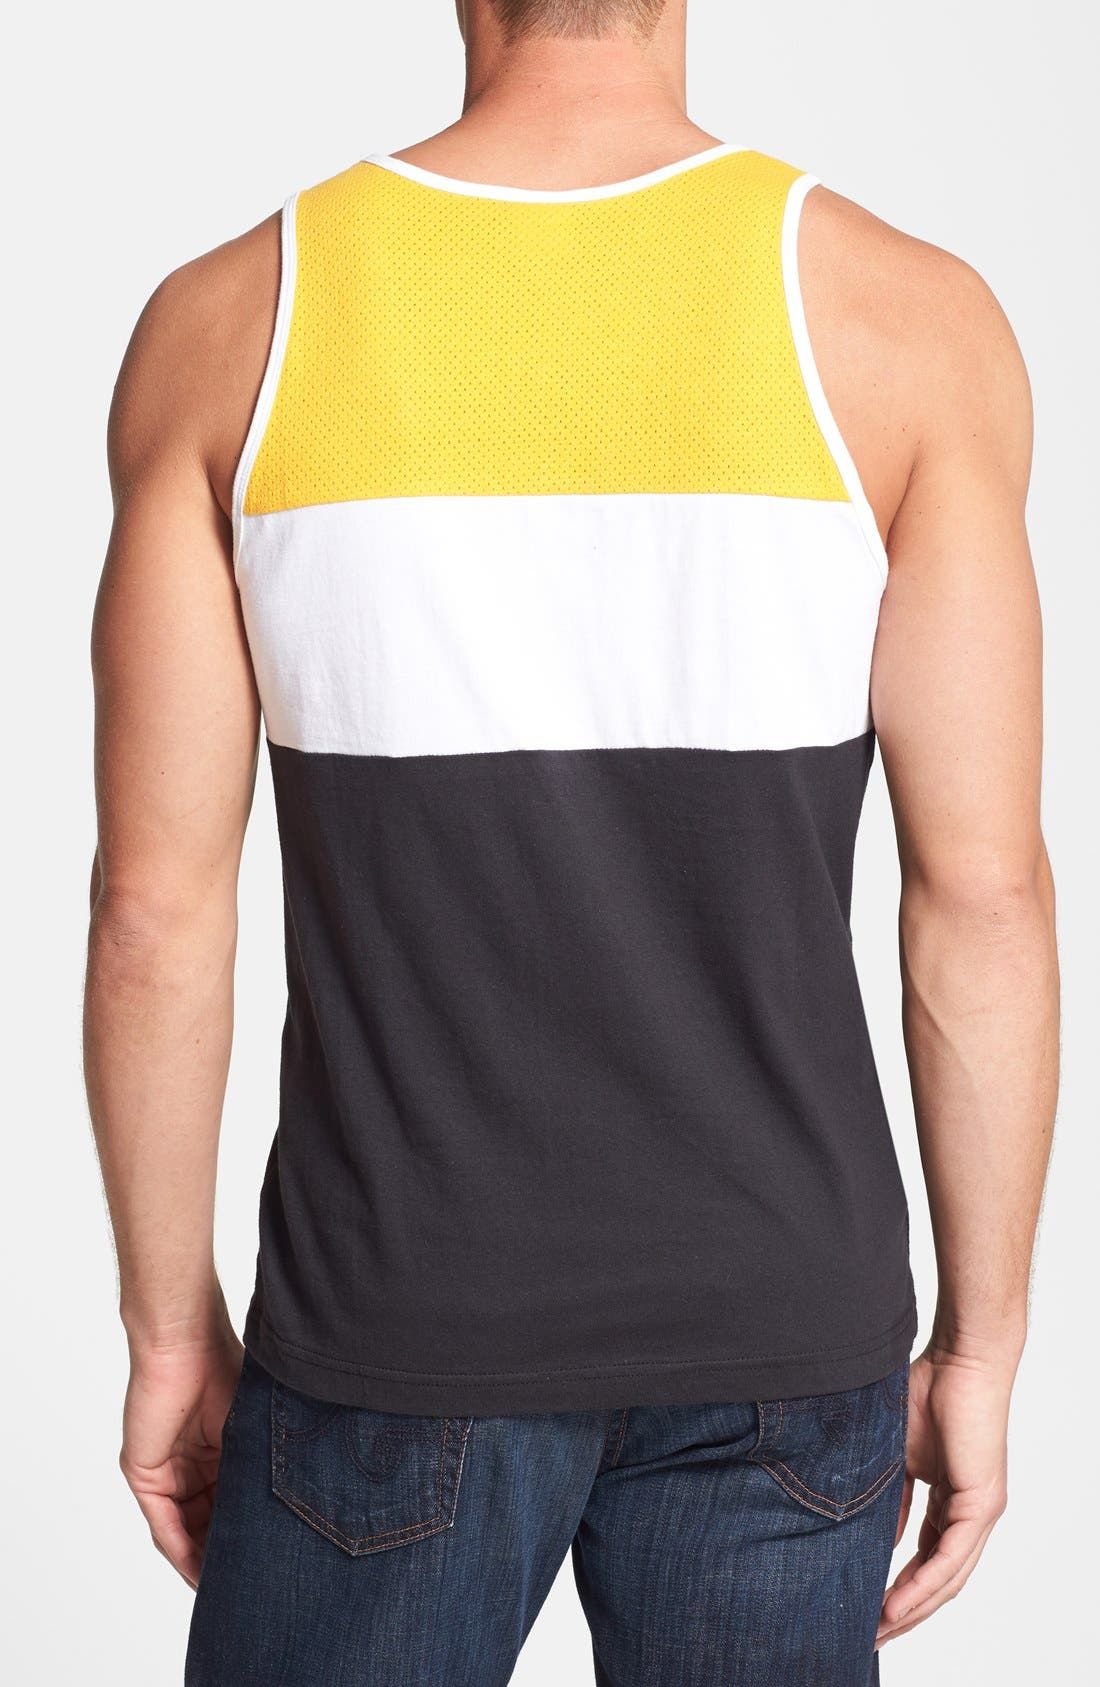 'Boston Bruins - Home Stand' Tank Top,                             Alternate thumbnail 3, color,                             001